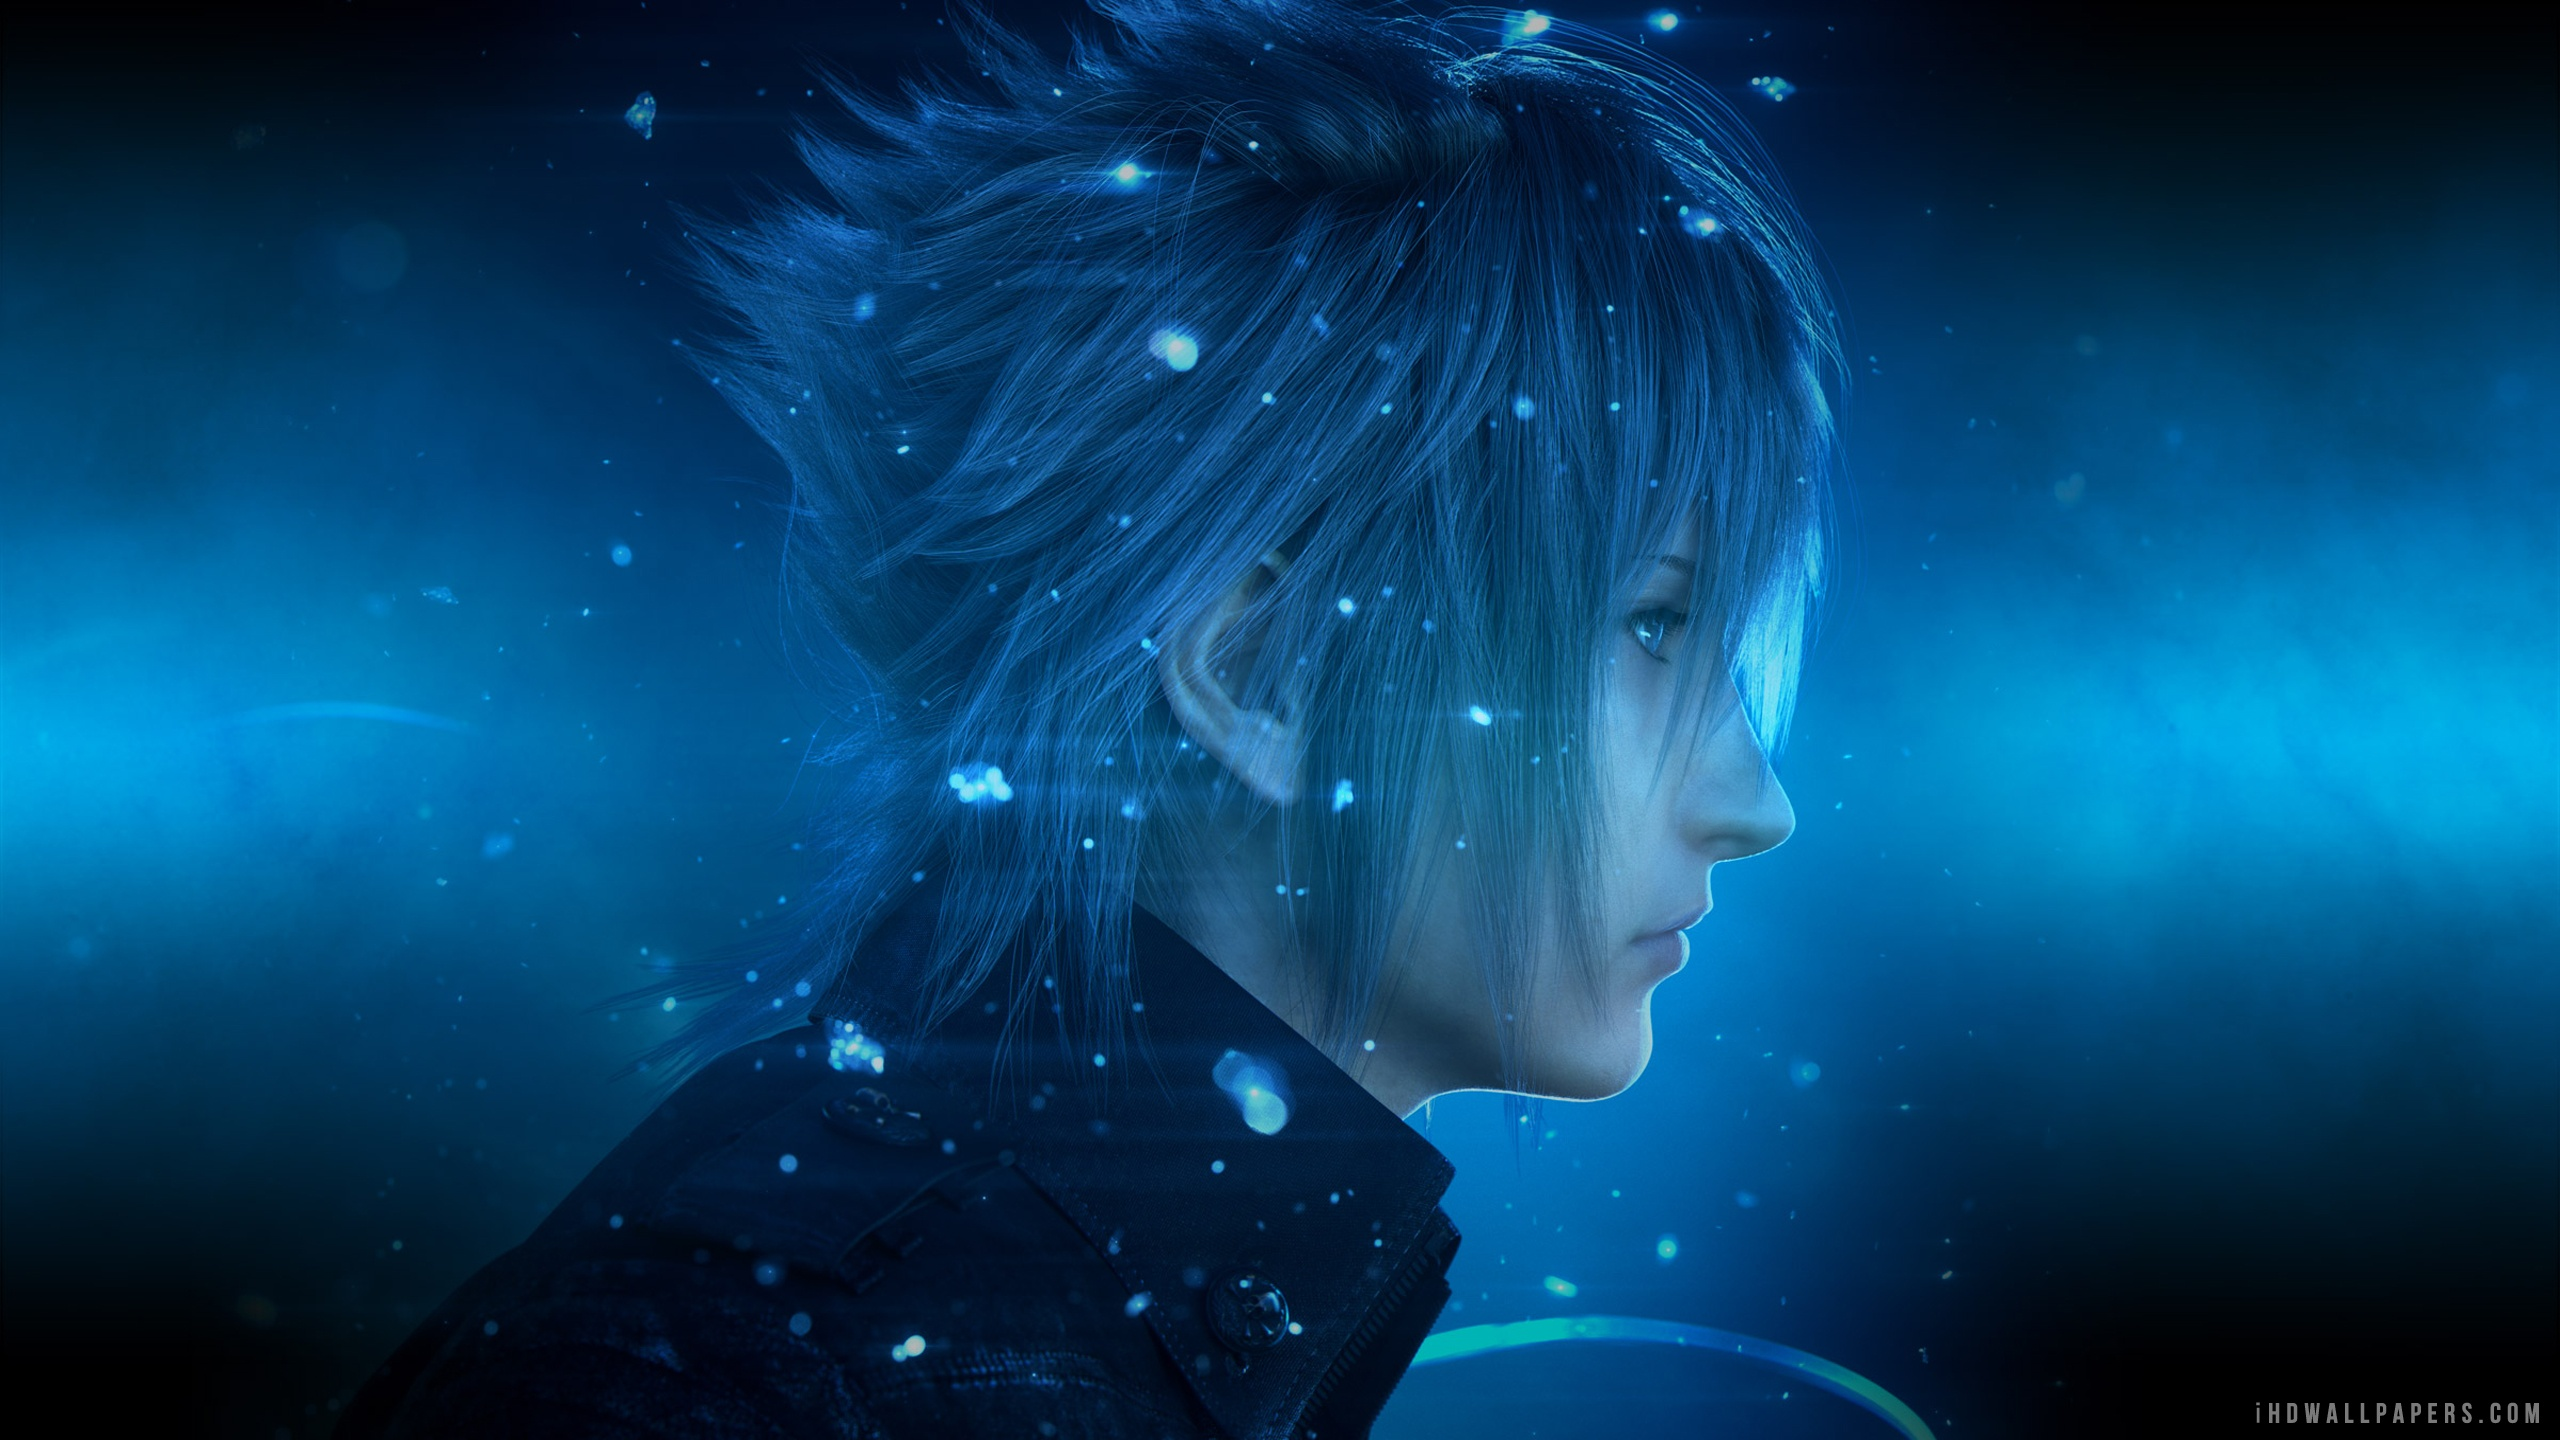 Final Fantasy Xv Wallpapers In Ultra Hd: Final Fantasy XV HD Wallpapers Free Download